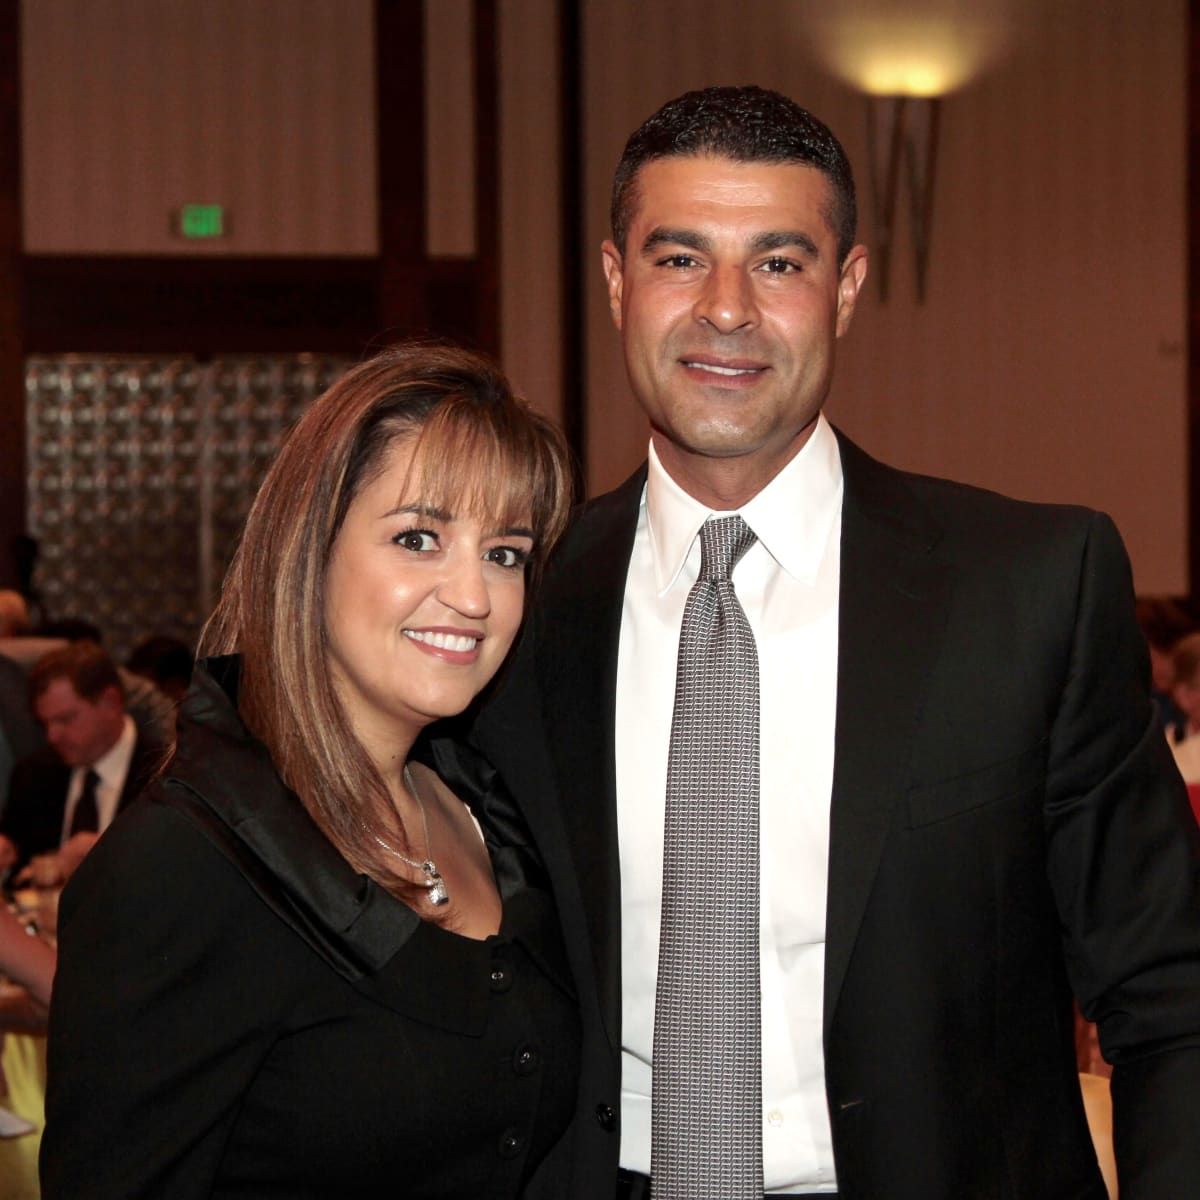 Houston Children's Charity 20th anniversary, 9/16  Maria Alaoui, Omar Alaoui